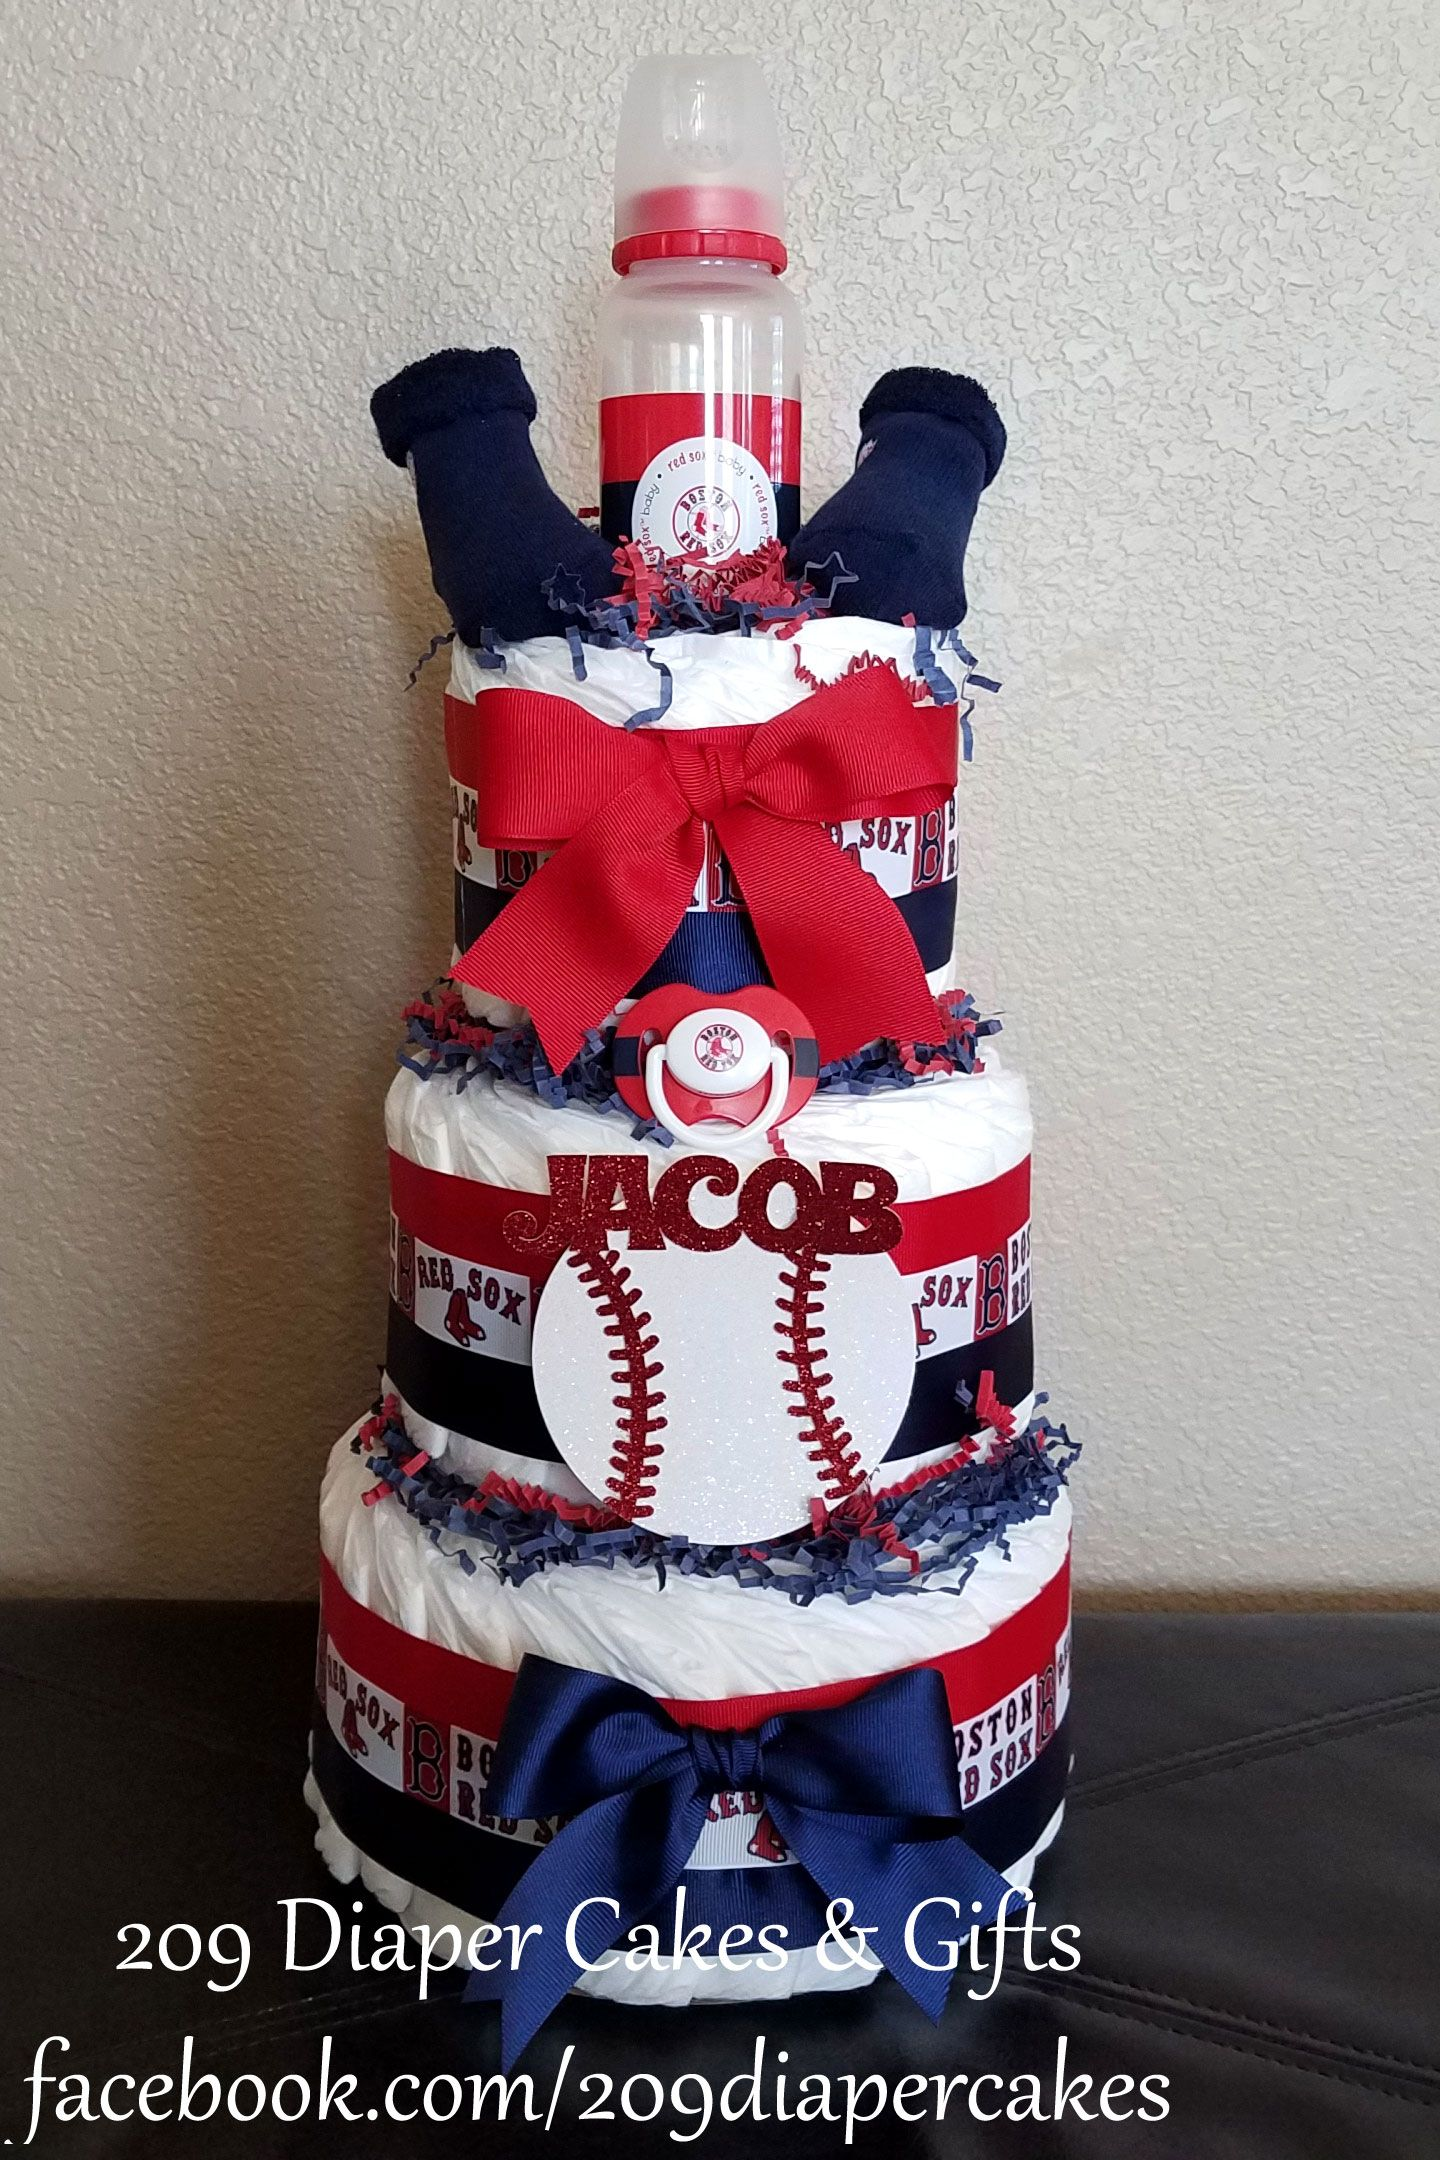 Red White and Blue Boston Red Sox 3-Tier Diaper Cake by 209 Diaper Cakes & Gifts - facebook.com/209diapercakes